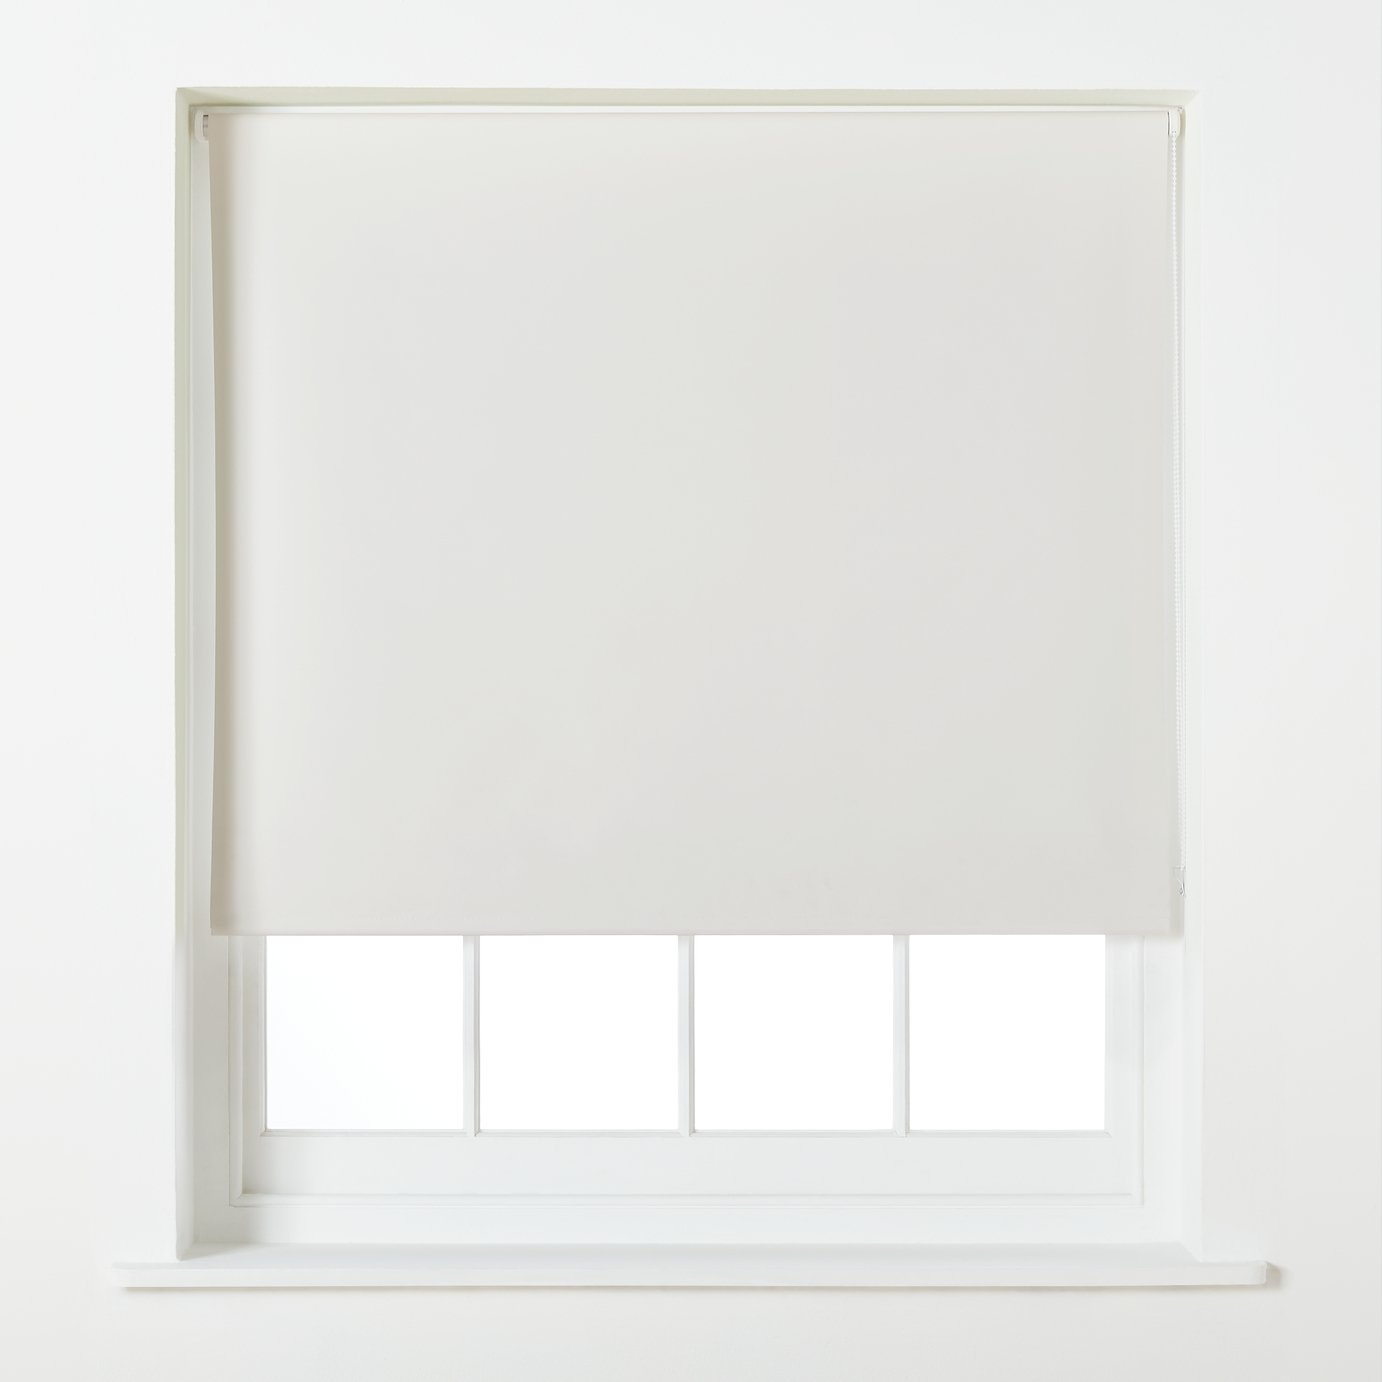 Argos Home Blackout Roller Blind - Cream